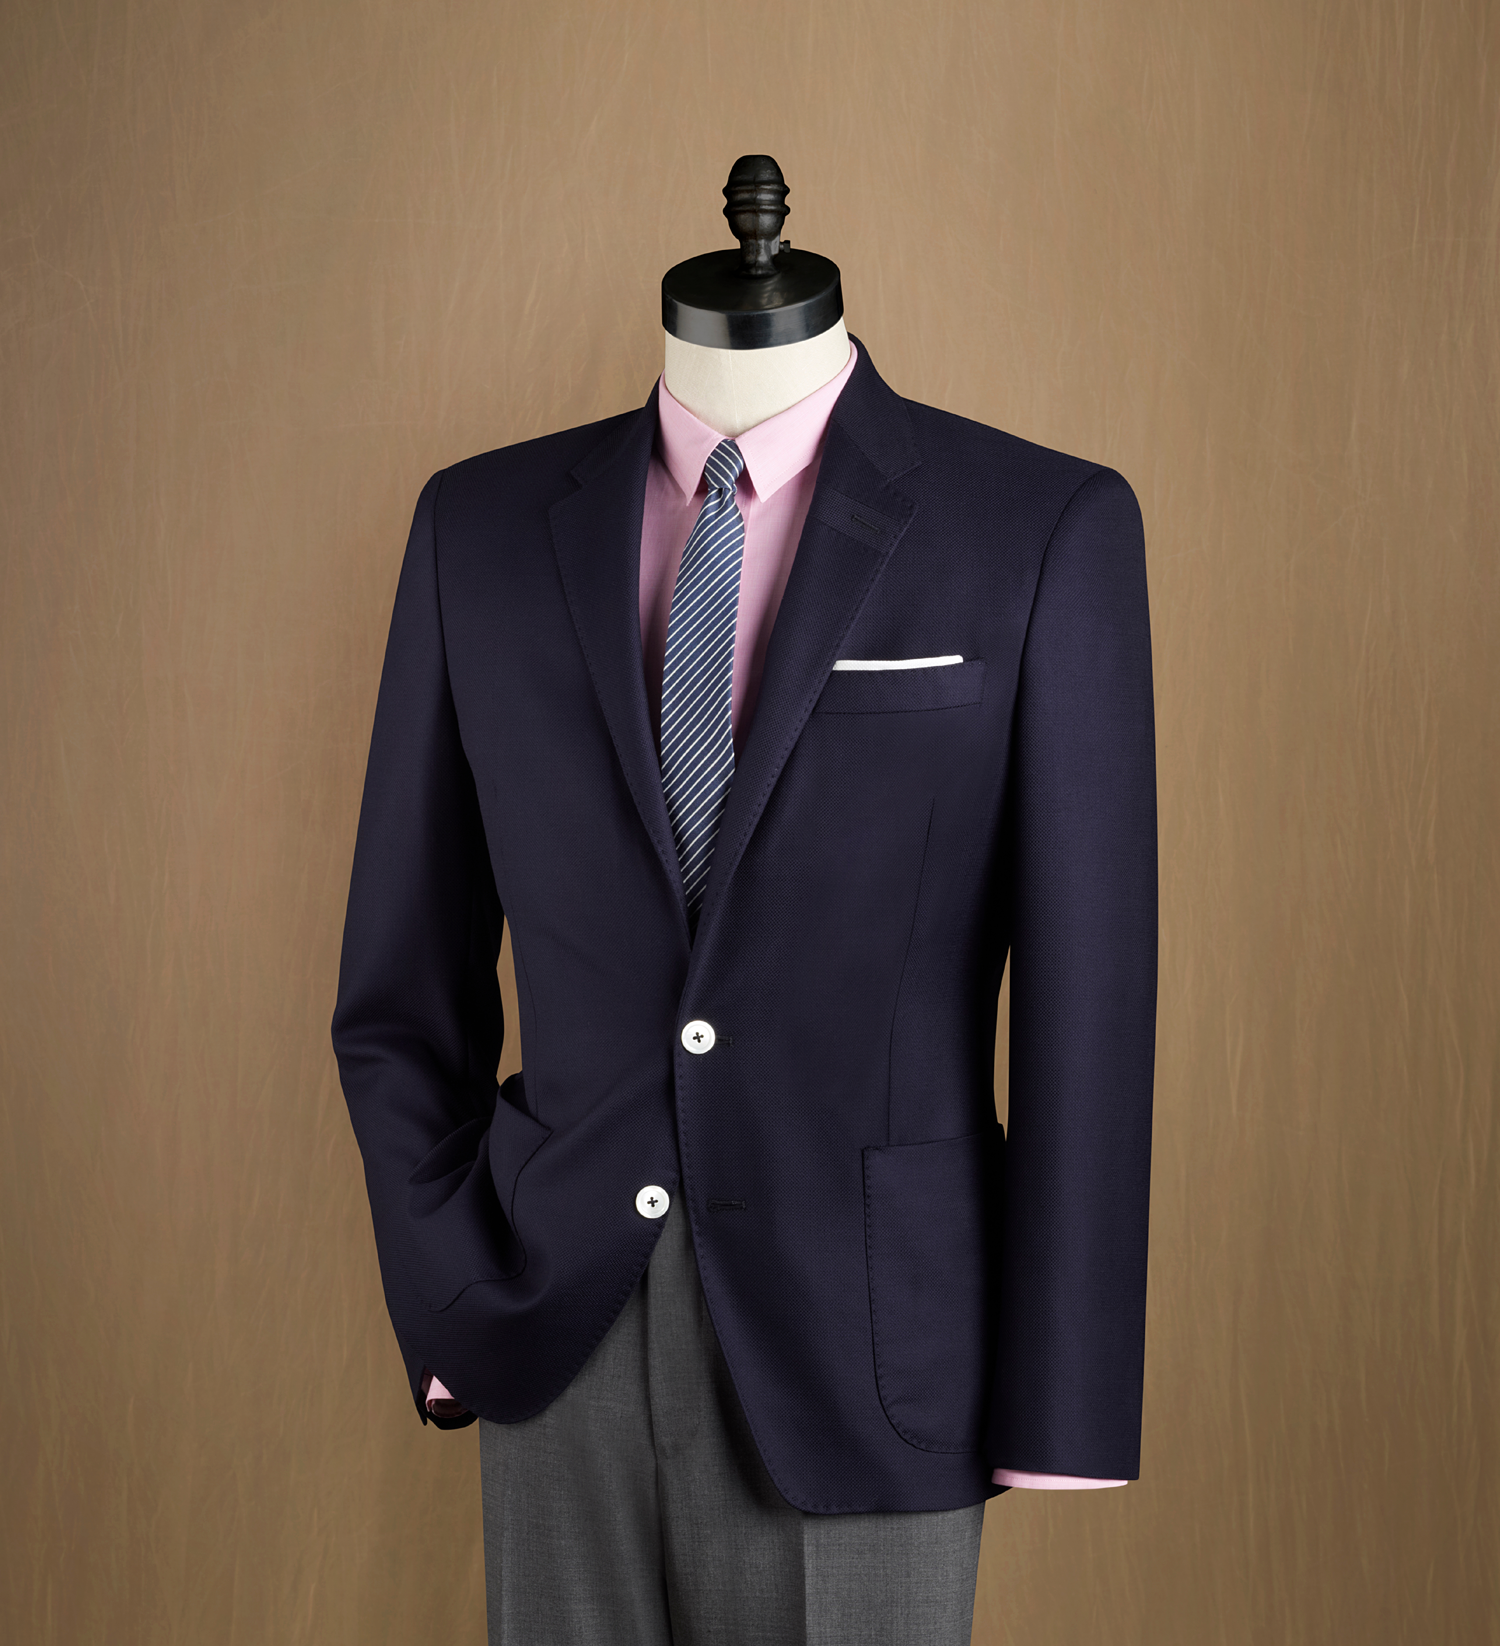 LaSalle Suit Collection